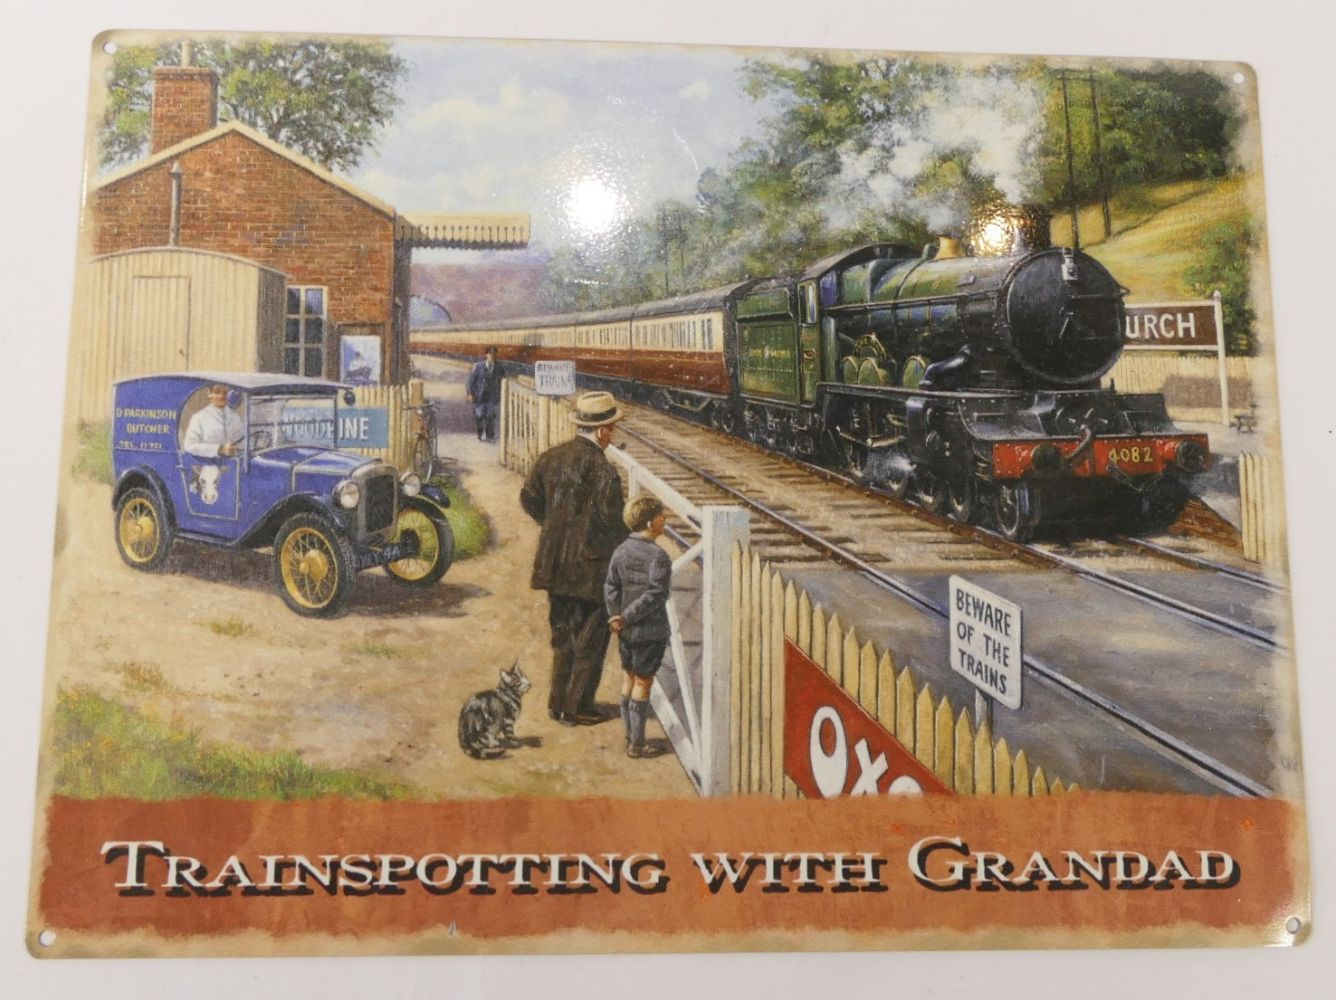 Railwayana, Rail and Steam Heritage, collections available Saturday 10-2, ask us about couriers.